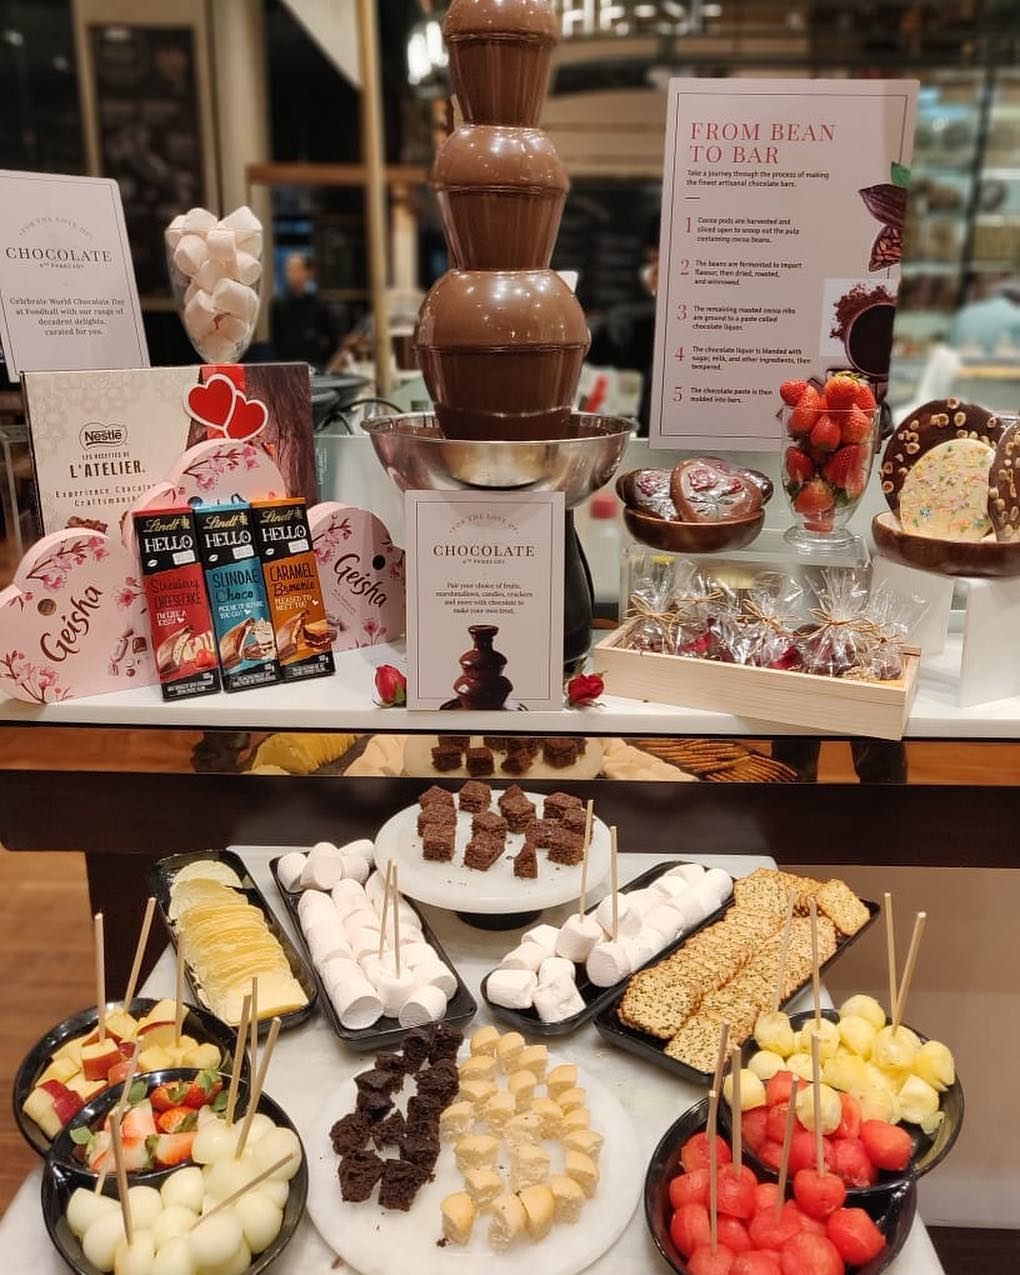 It's Chocolate day! How about dipping brownies, chips, fruits and marshmallows in a luscious chocolate fountain? Join us to experience the flowing decadence of Chocolate @FoodhallIndia  stores - 1MG and VR, Bangalore; Palladium and Linking Road, Mumbai; and Vasant Kunj, Two horizon and MKT, Delhi.  #ChocolateDay #ForTheLoveOfFood